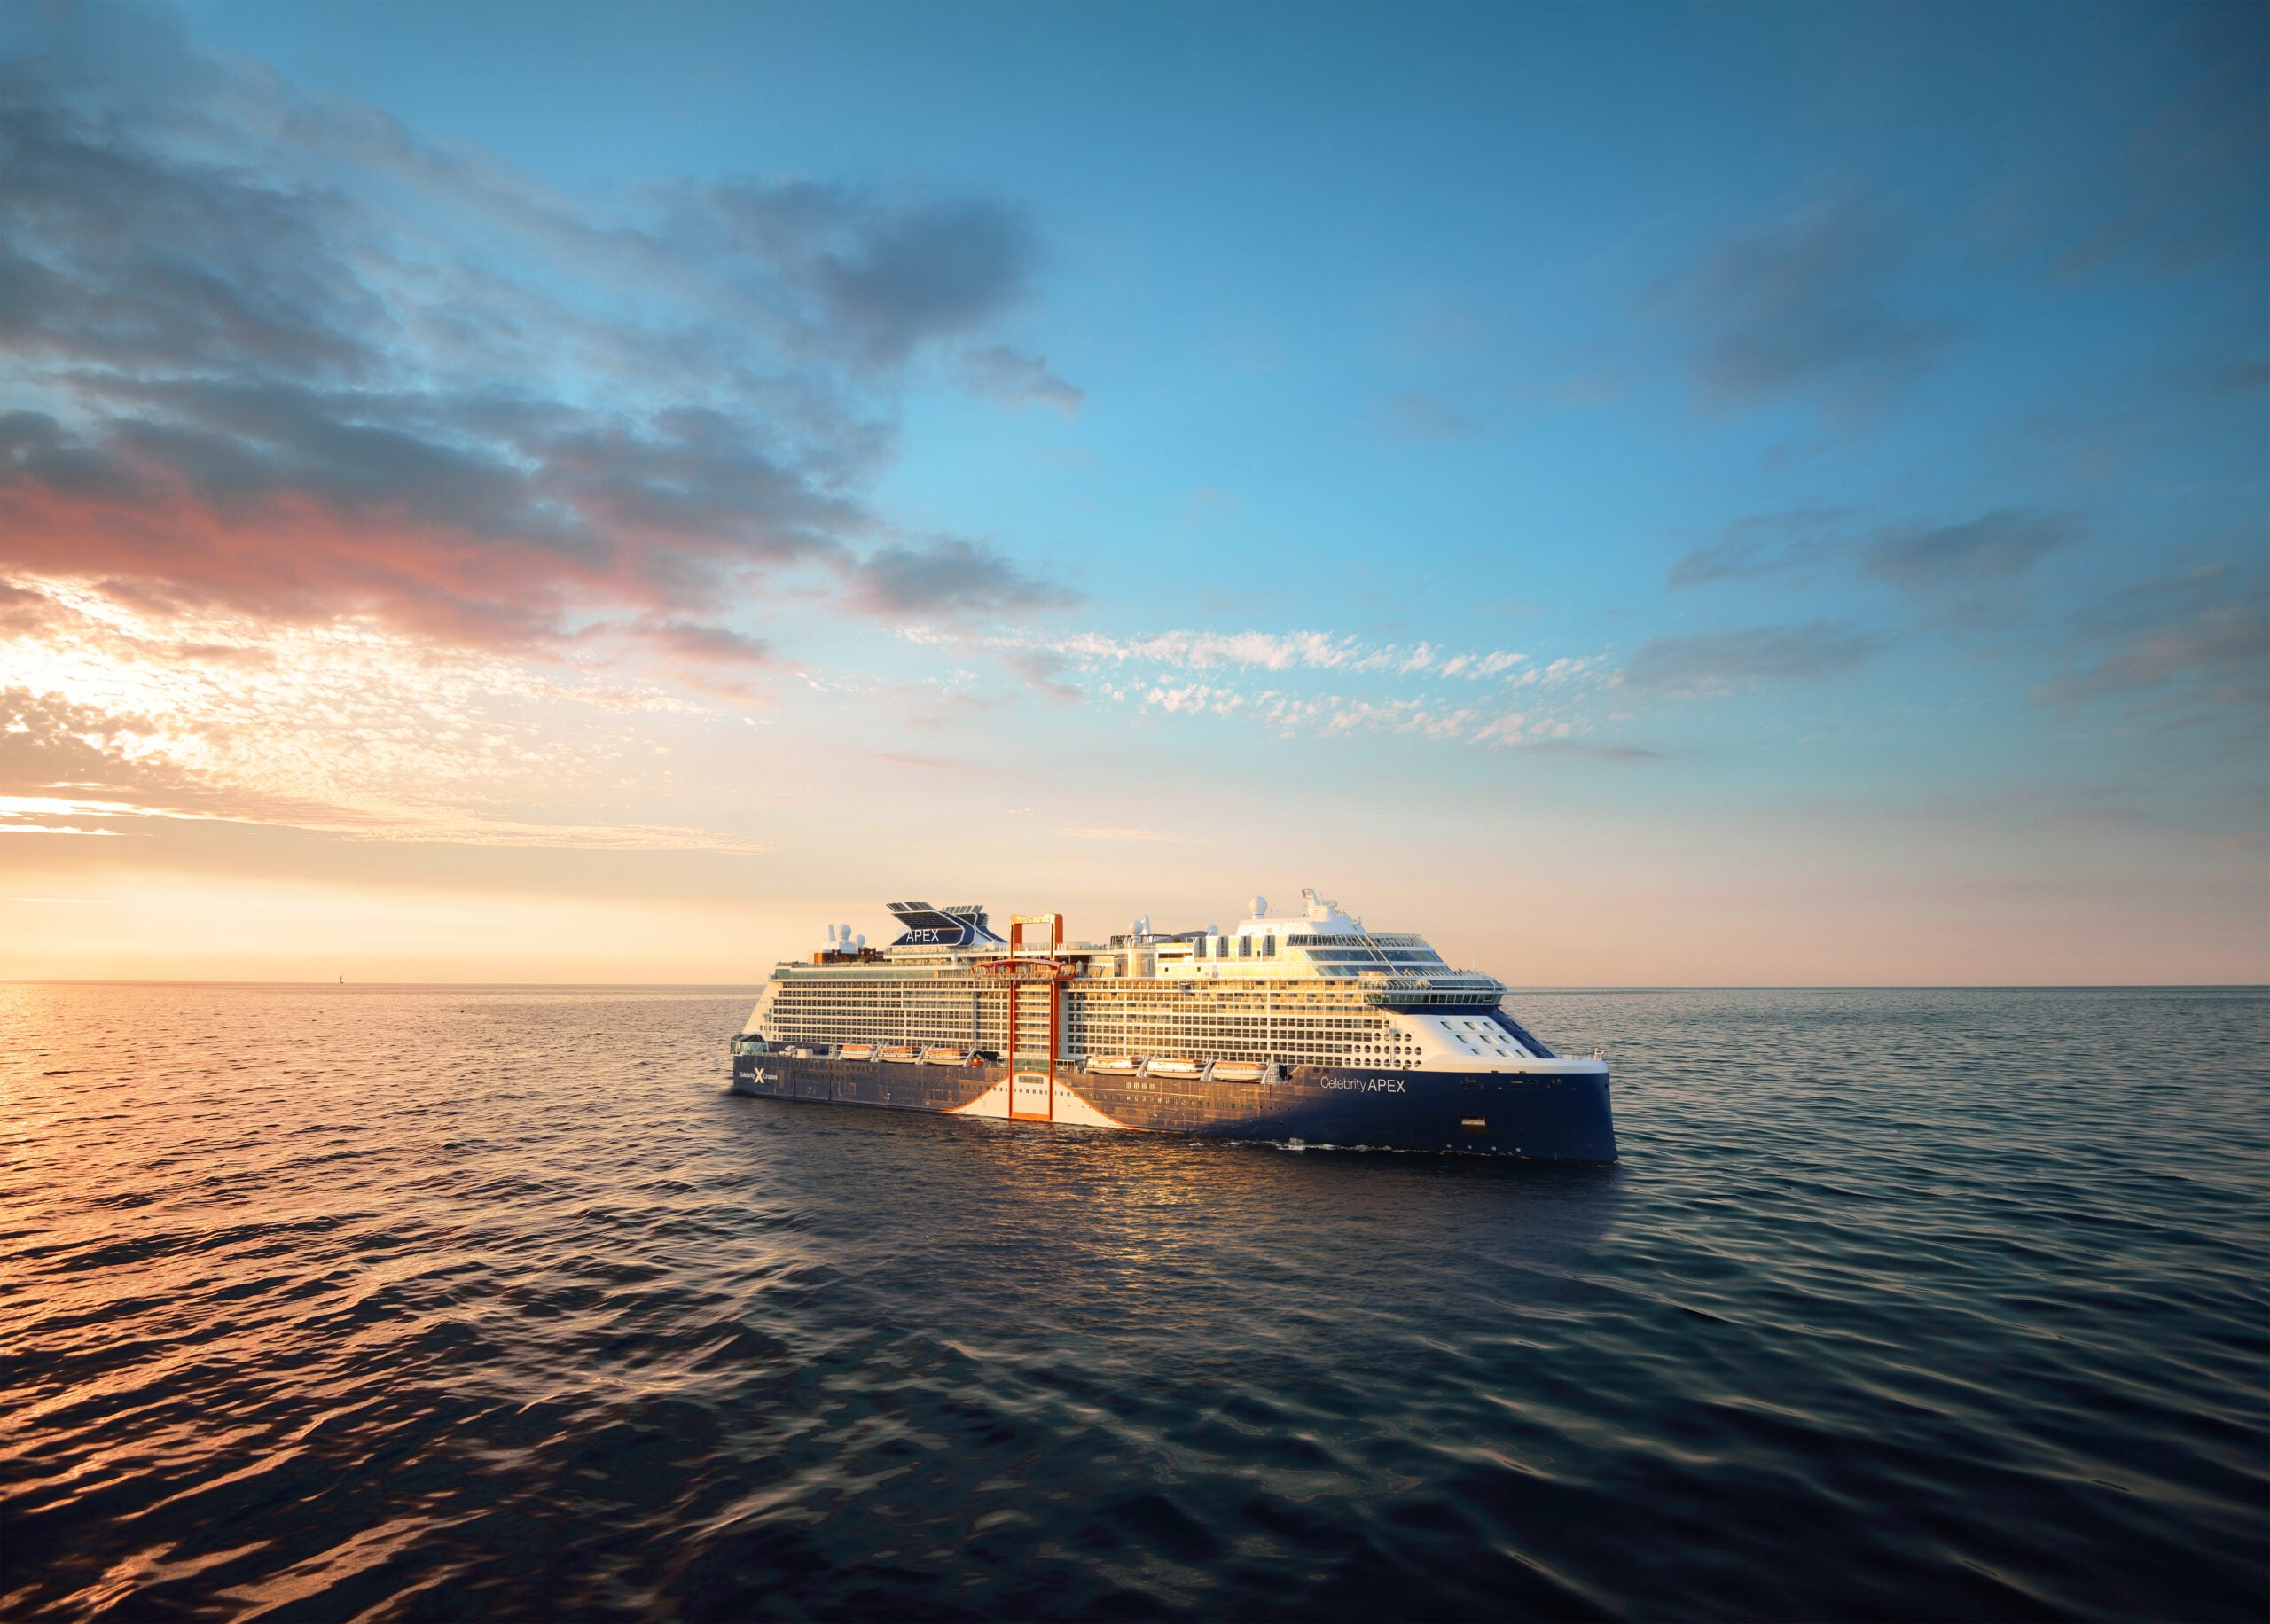 The 5 best new cruise ships of 2020 that we can't wait to try